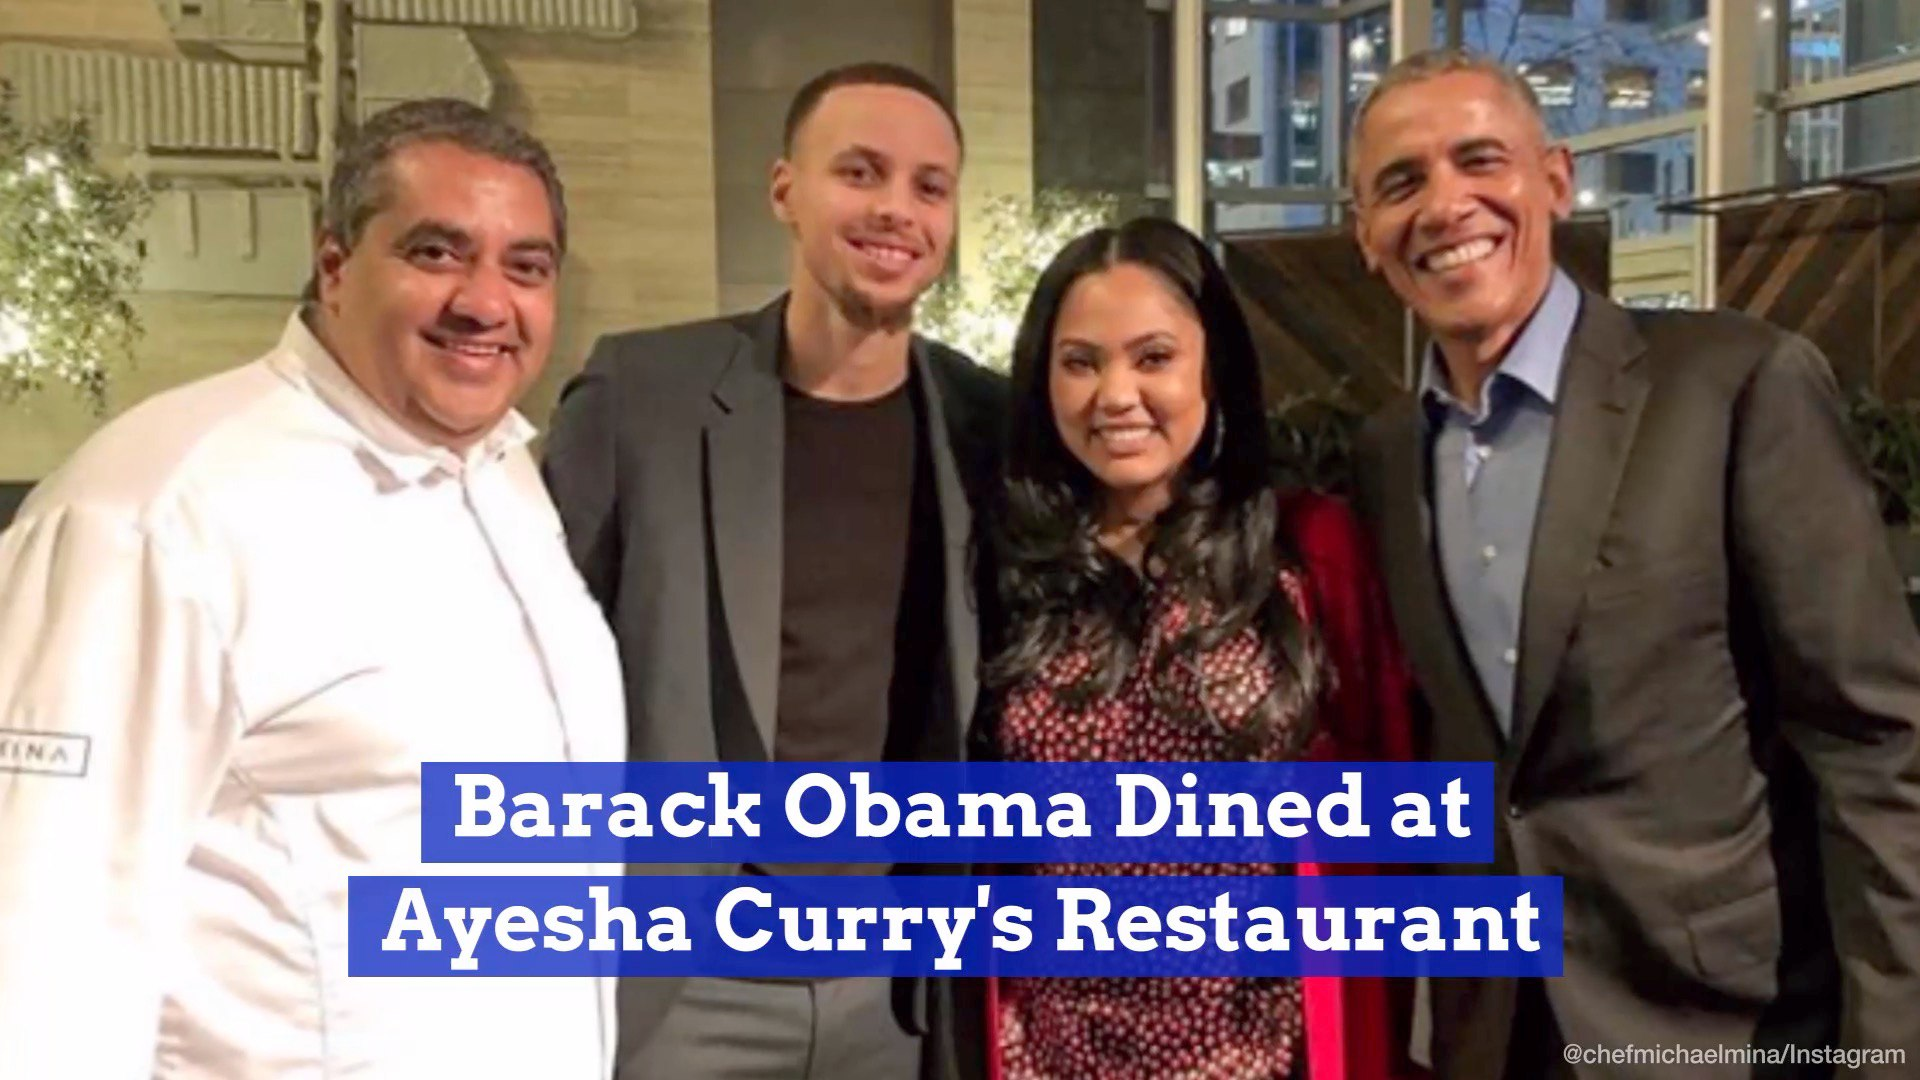 President Obama Goes For A Special Dinner On Presidents Day